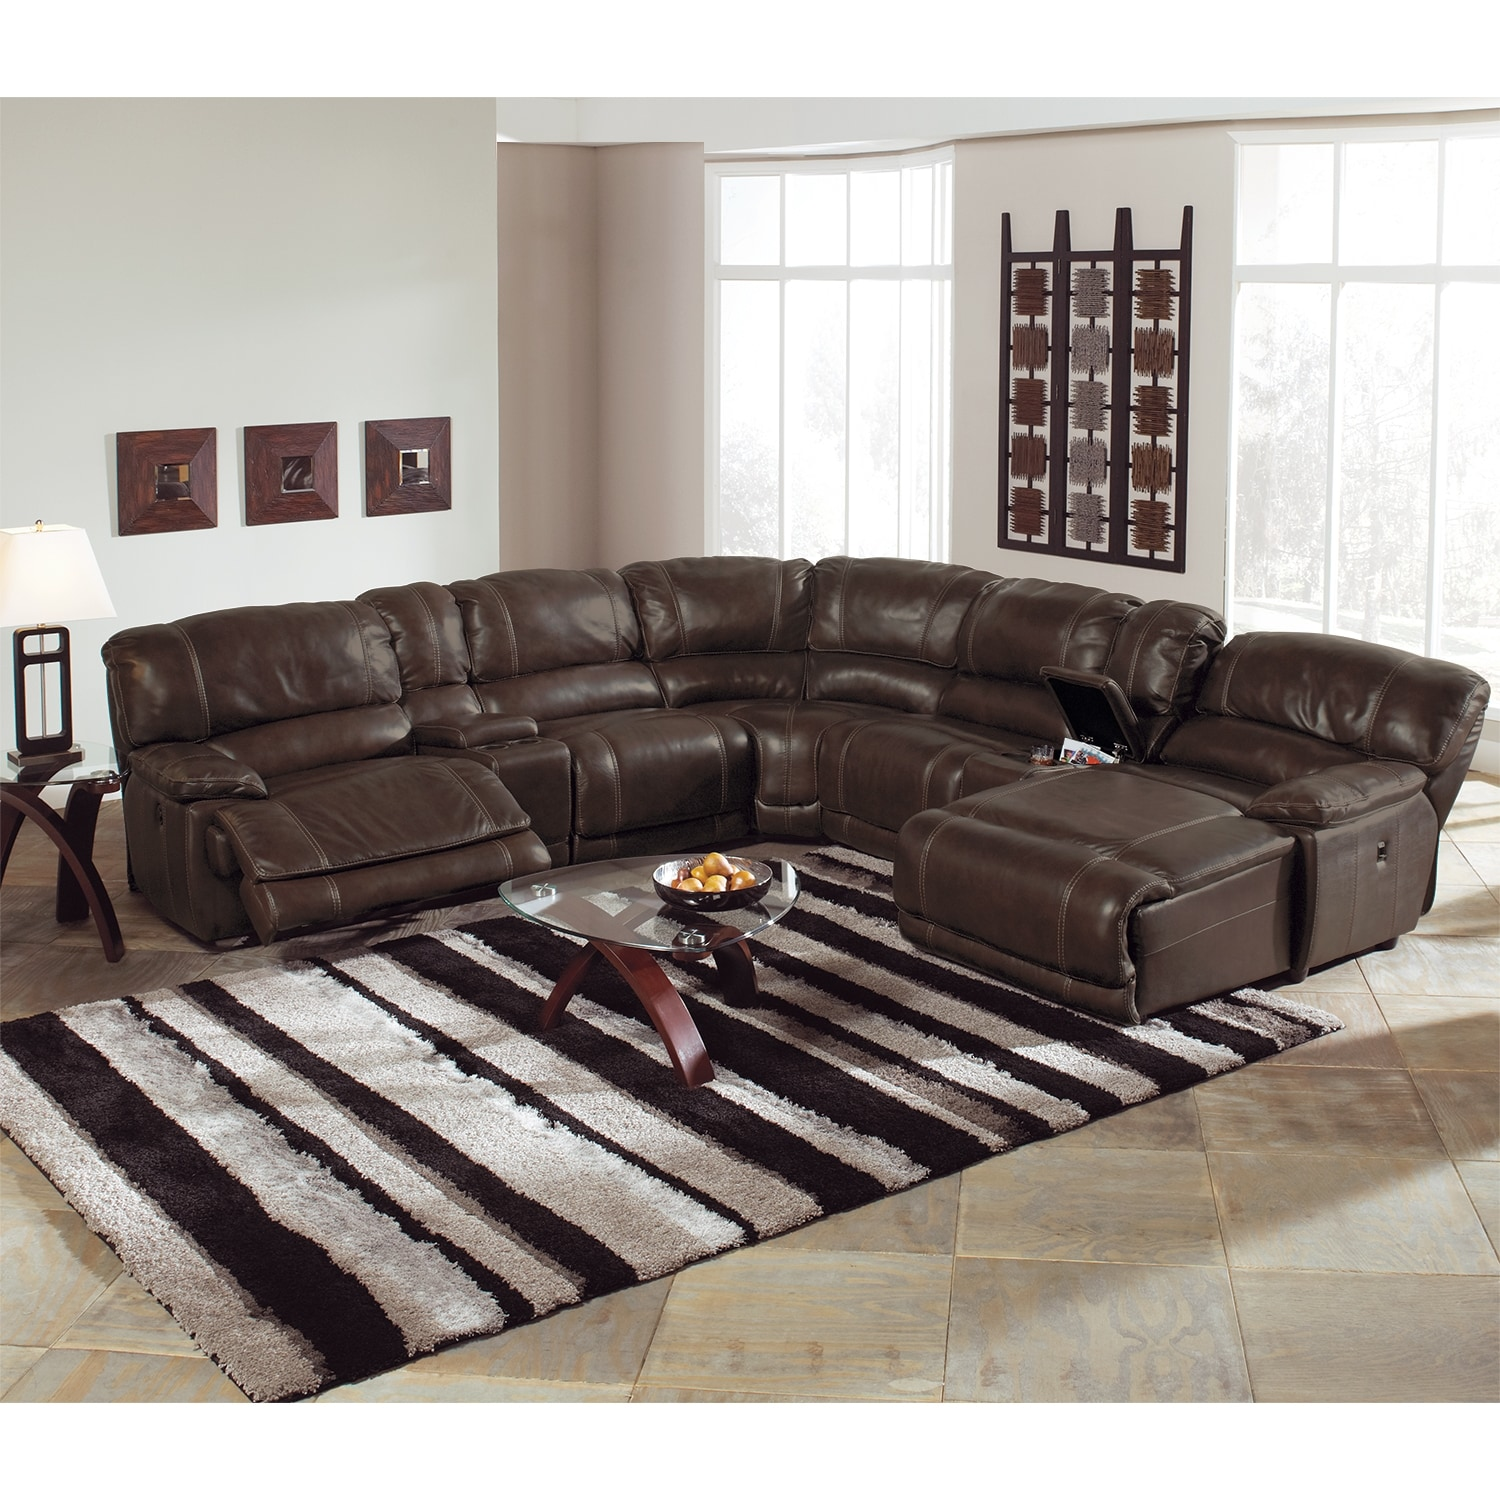 Brown Chaise Couch Leather